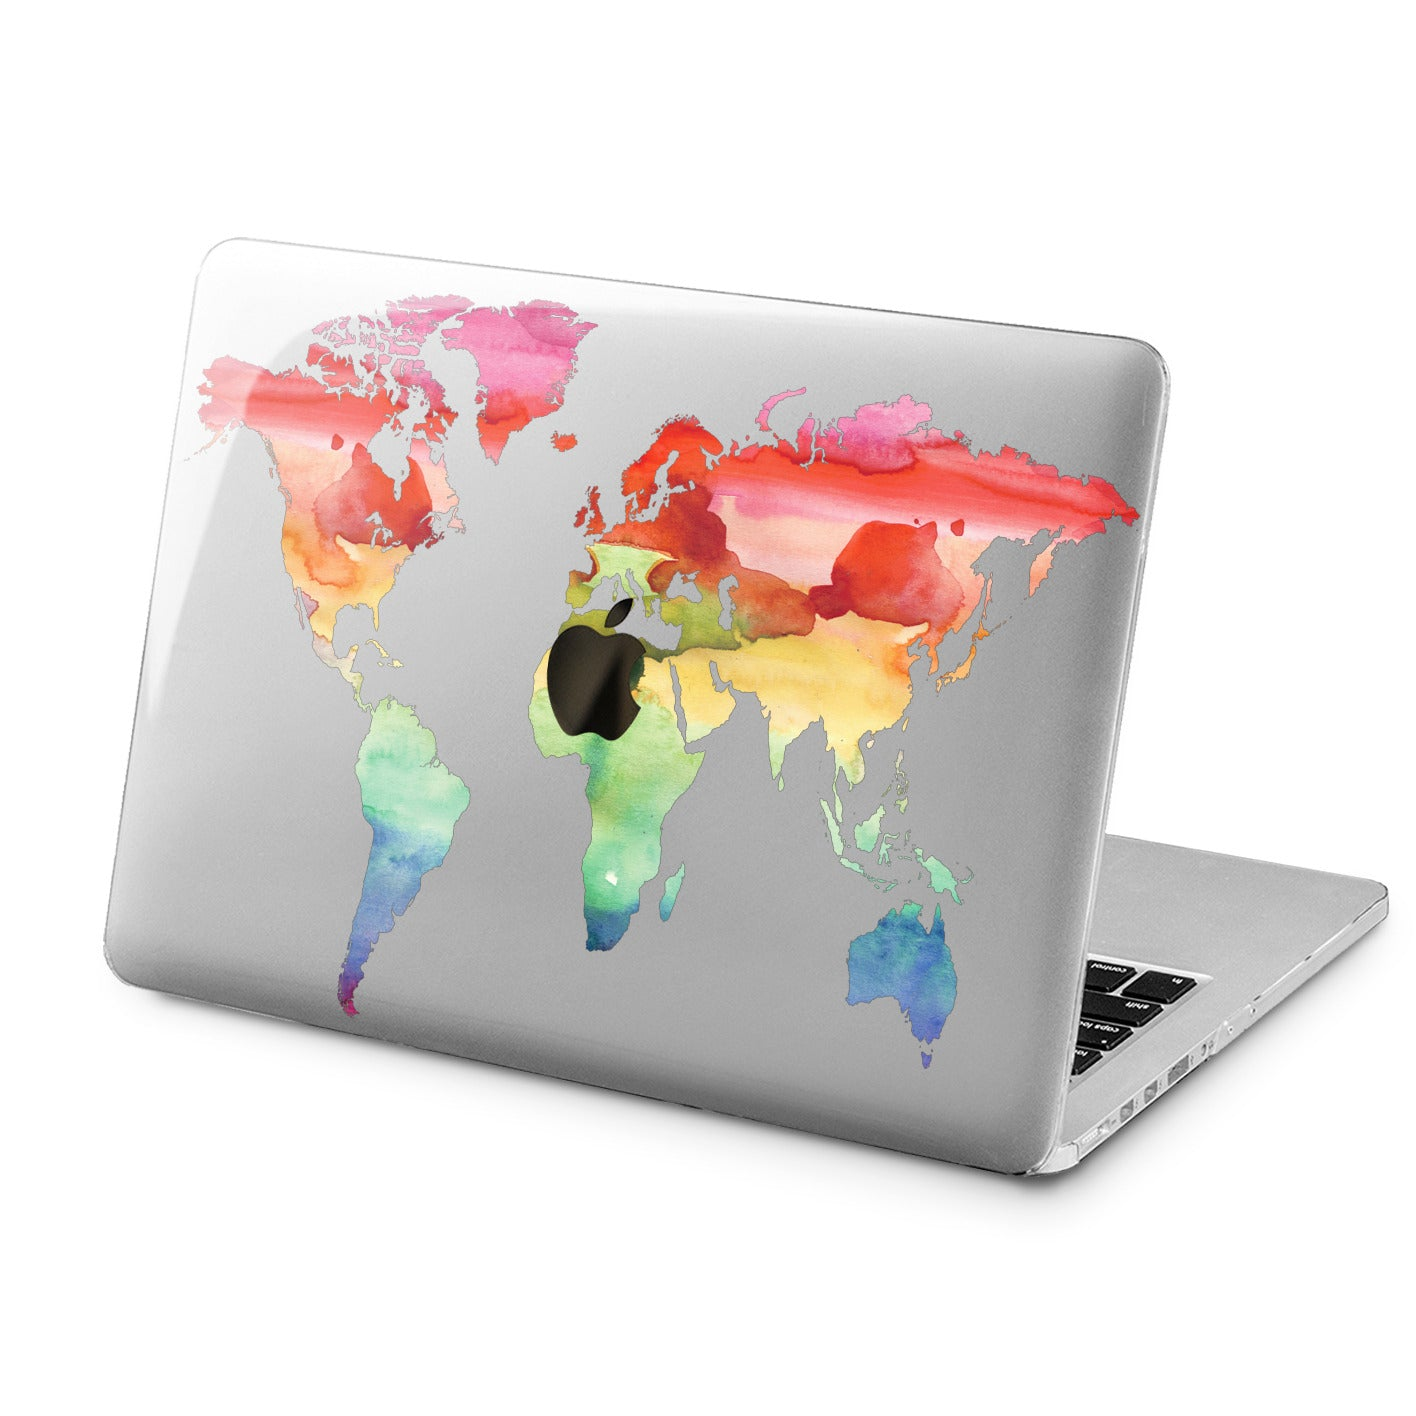 Lex Altern Lex Altern Colorful Map Case for your Laptop Apple Macbook.